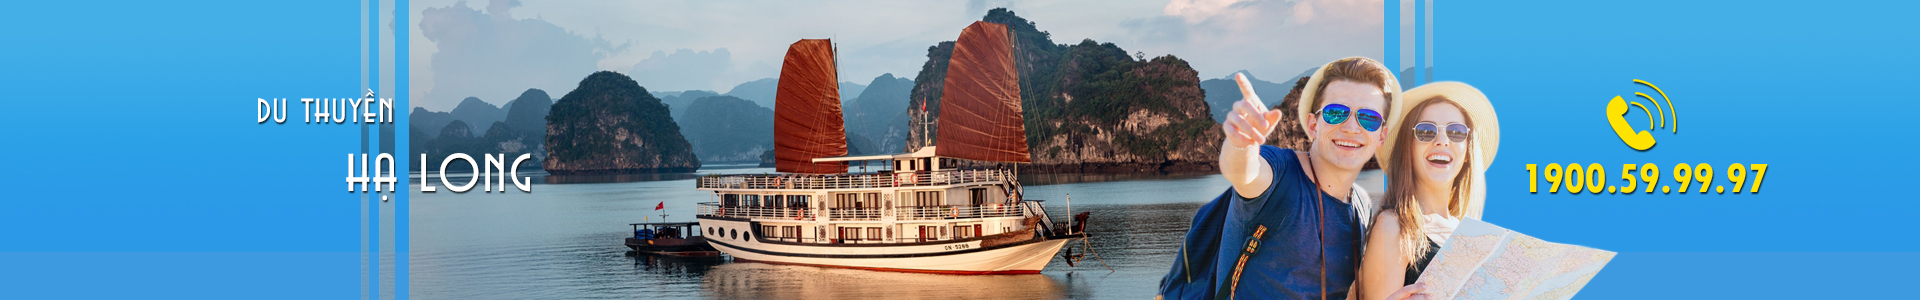 Banner du thuyen Ha Long